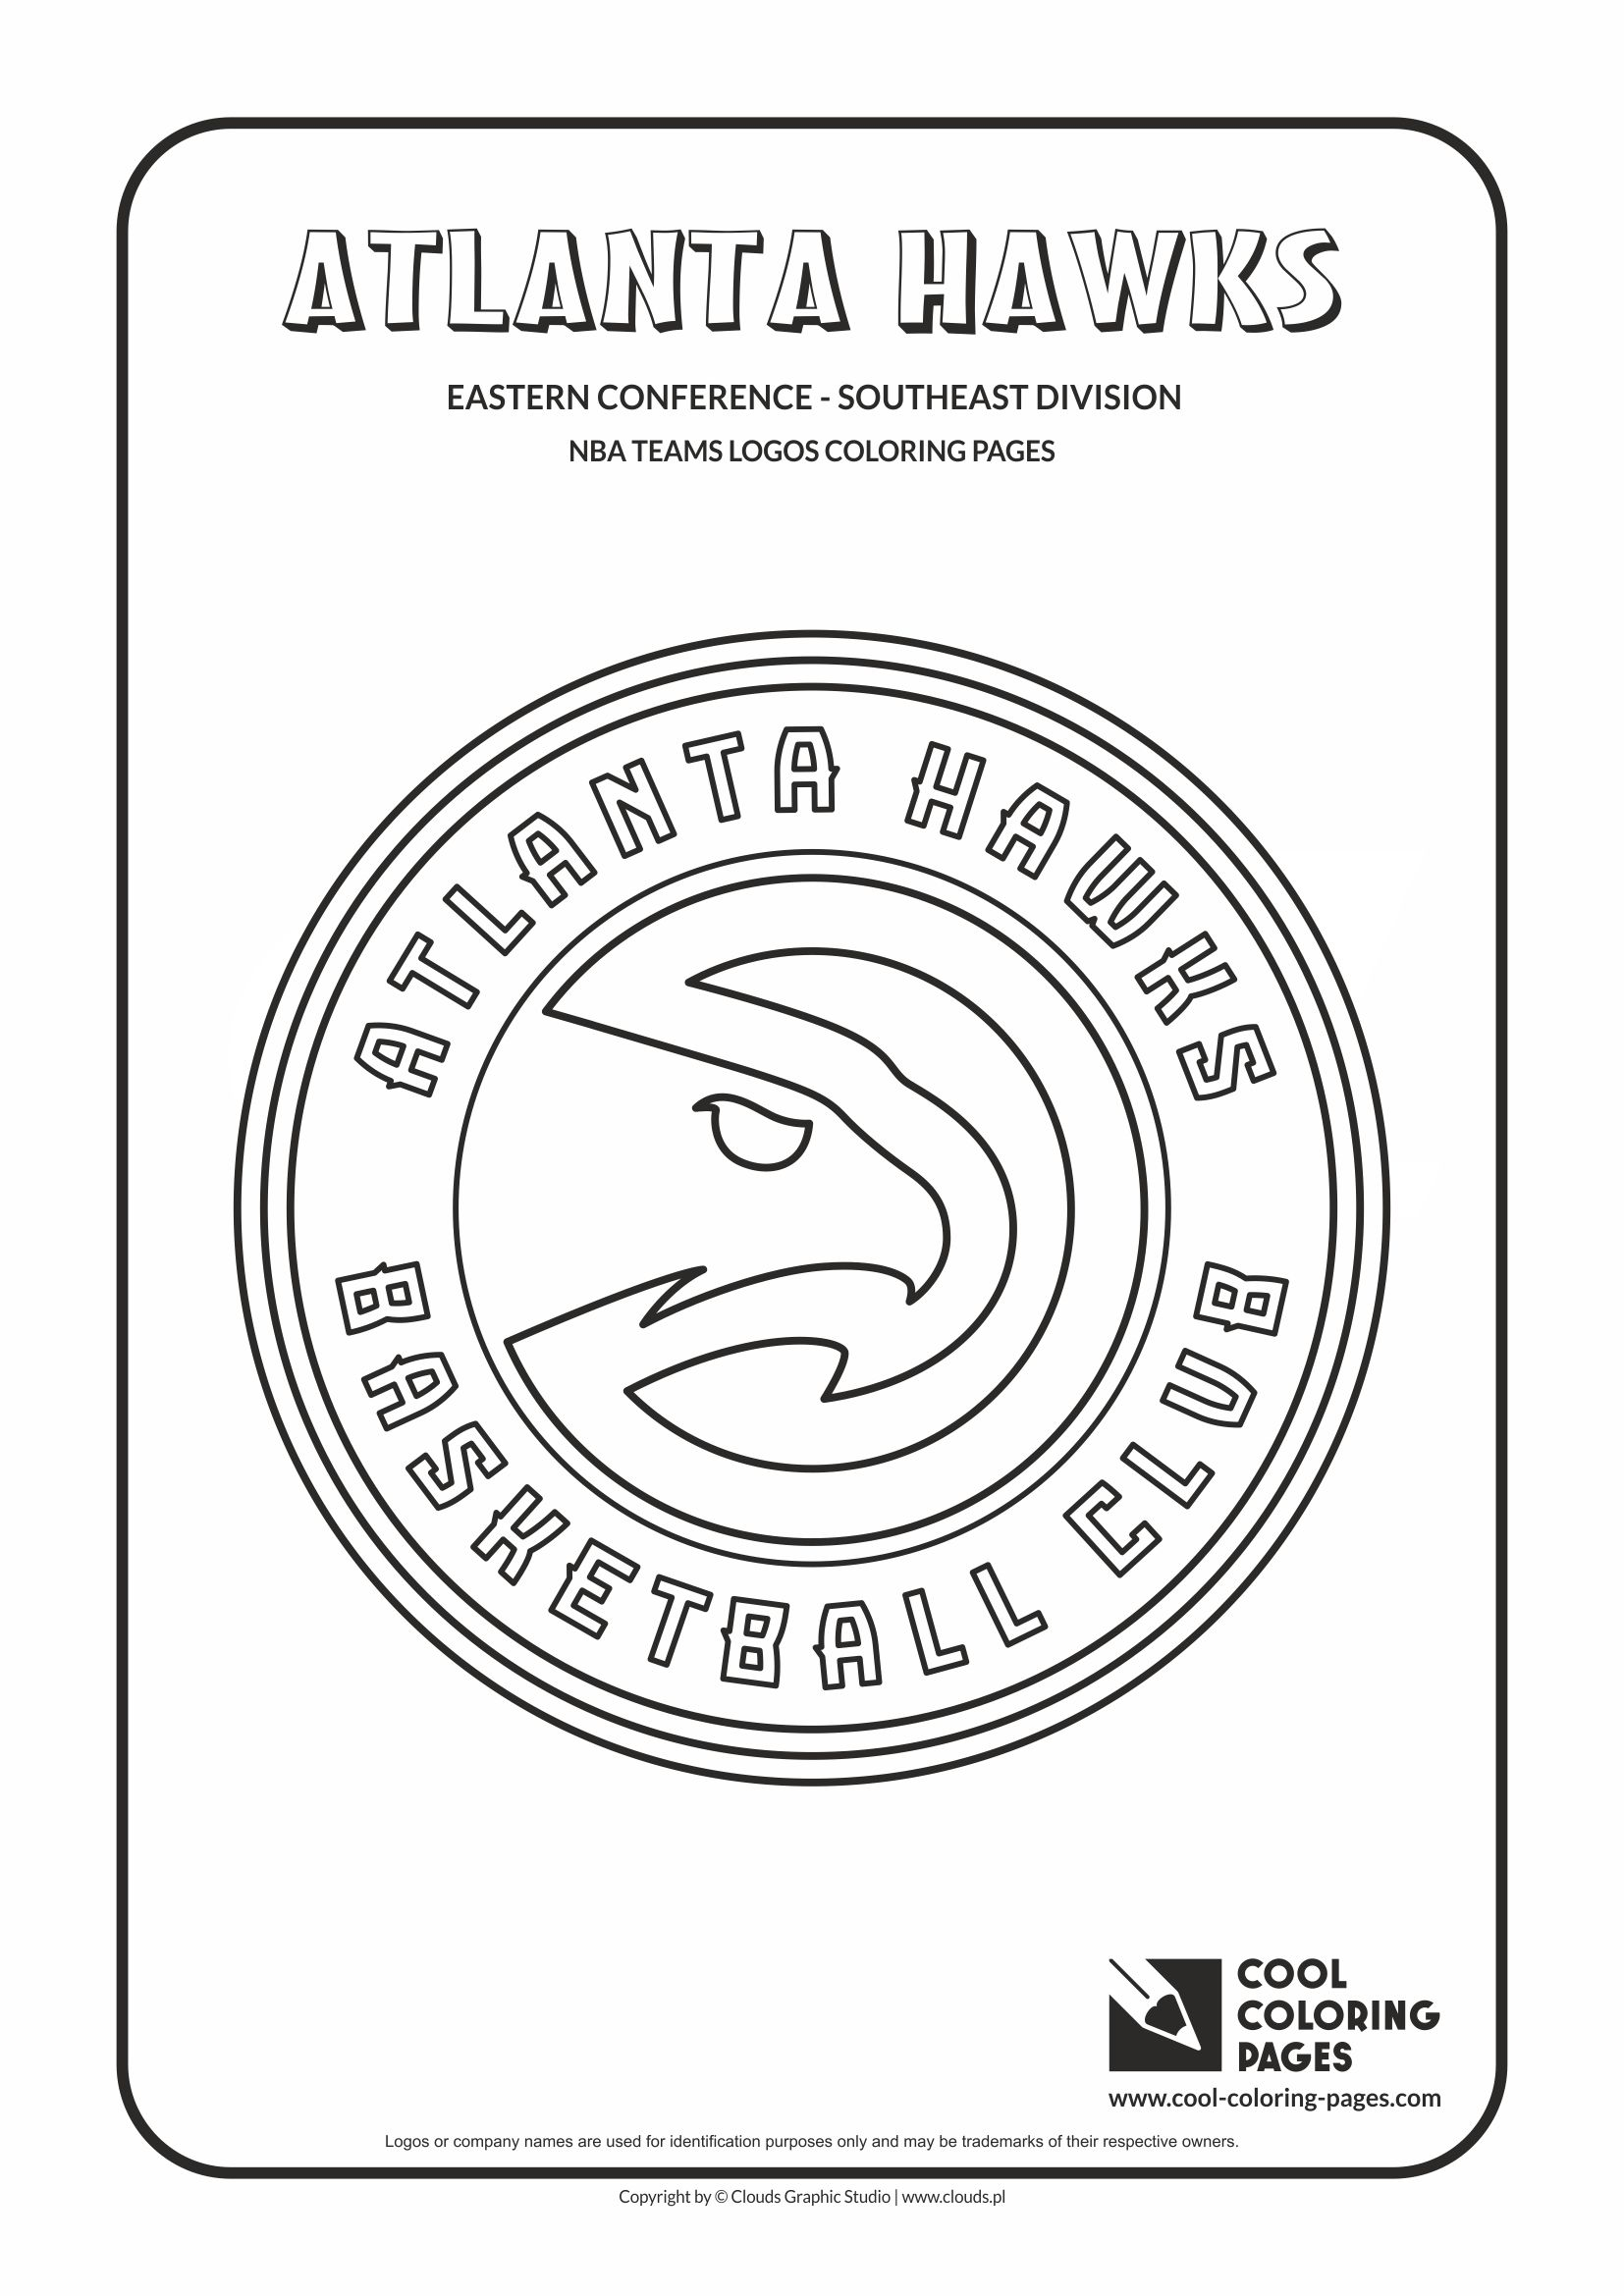 Cool Coloring Pages Atlanta Hawks